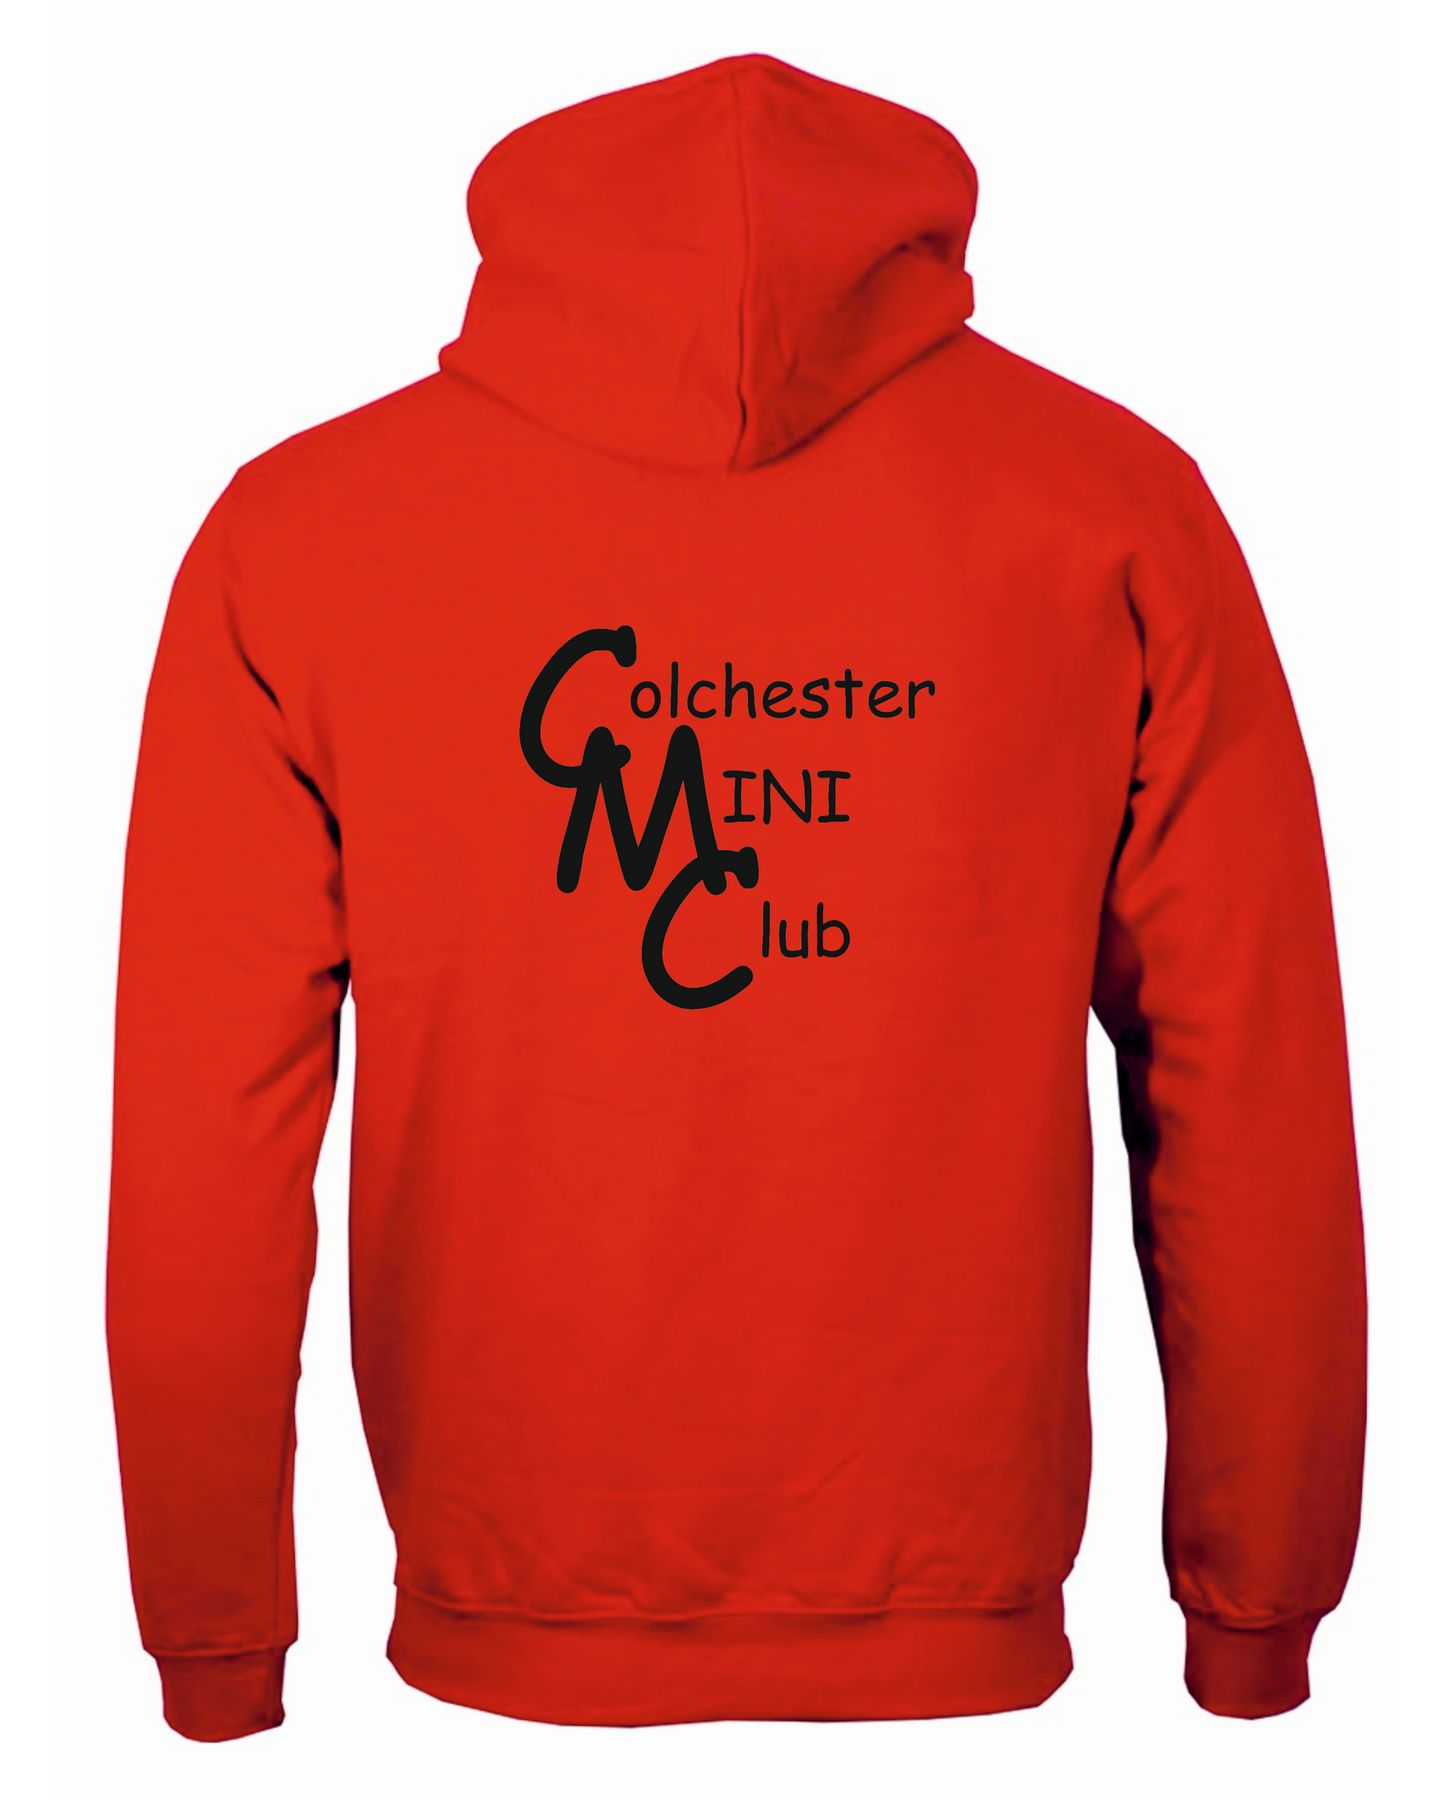 CMC – Classic Hoodie in Fire Red